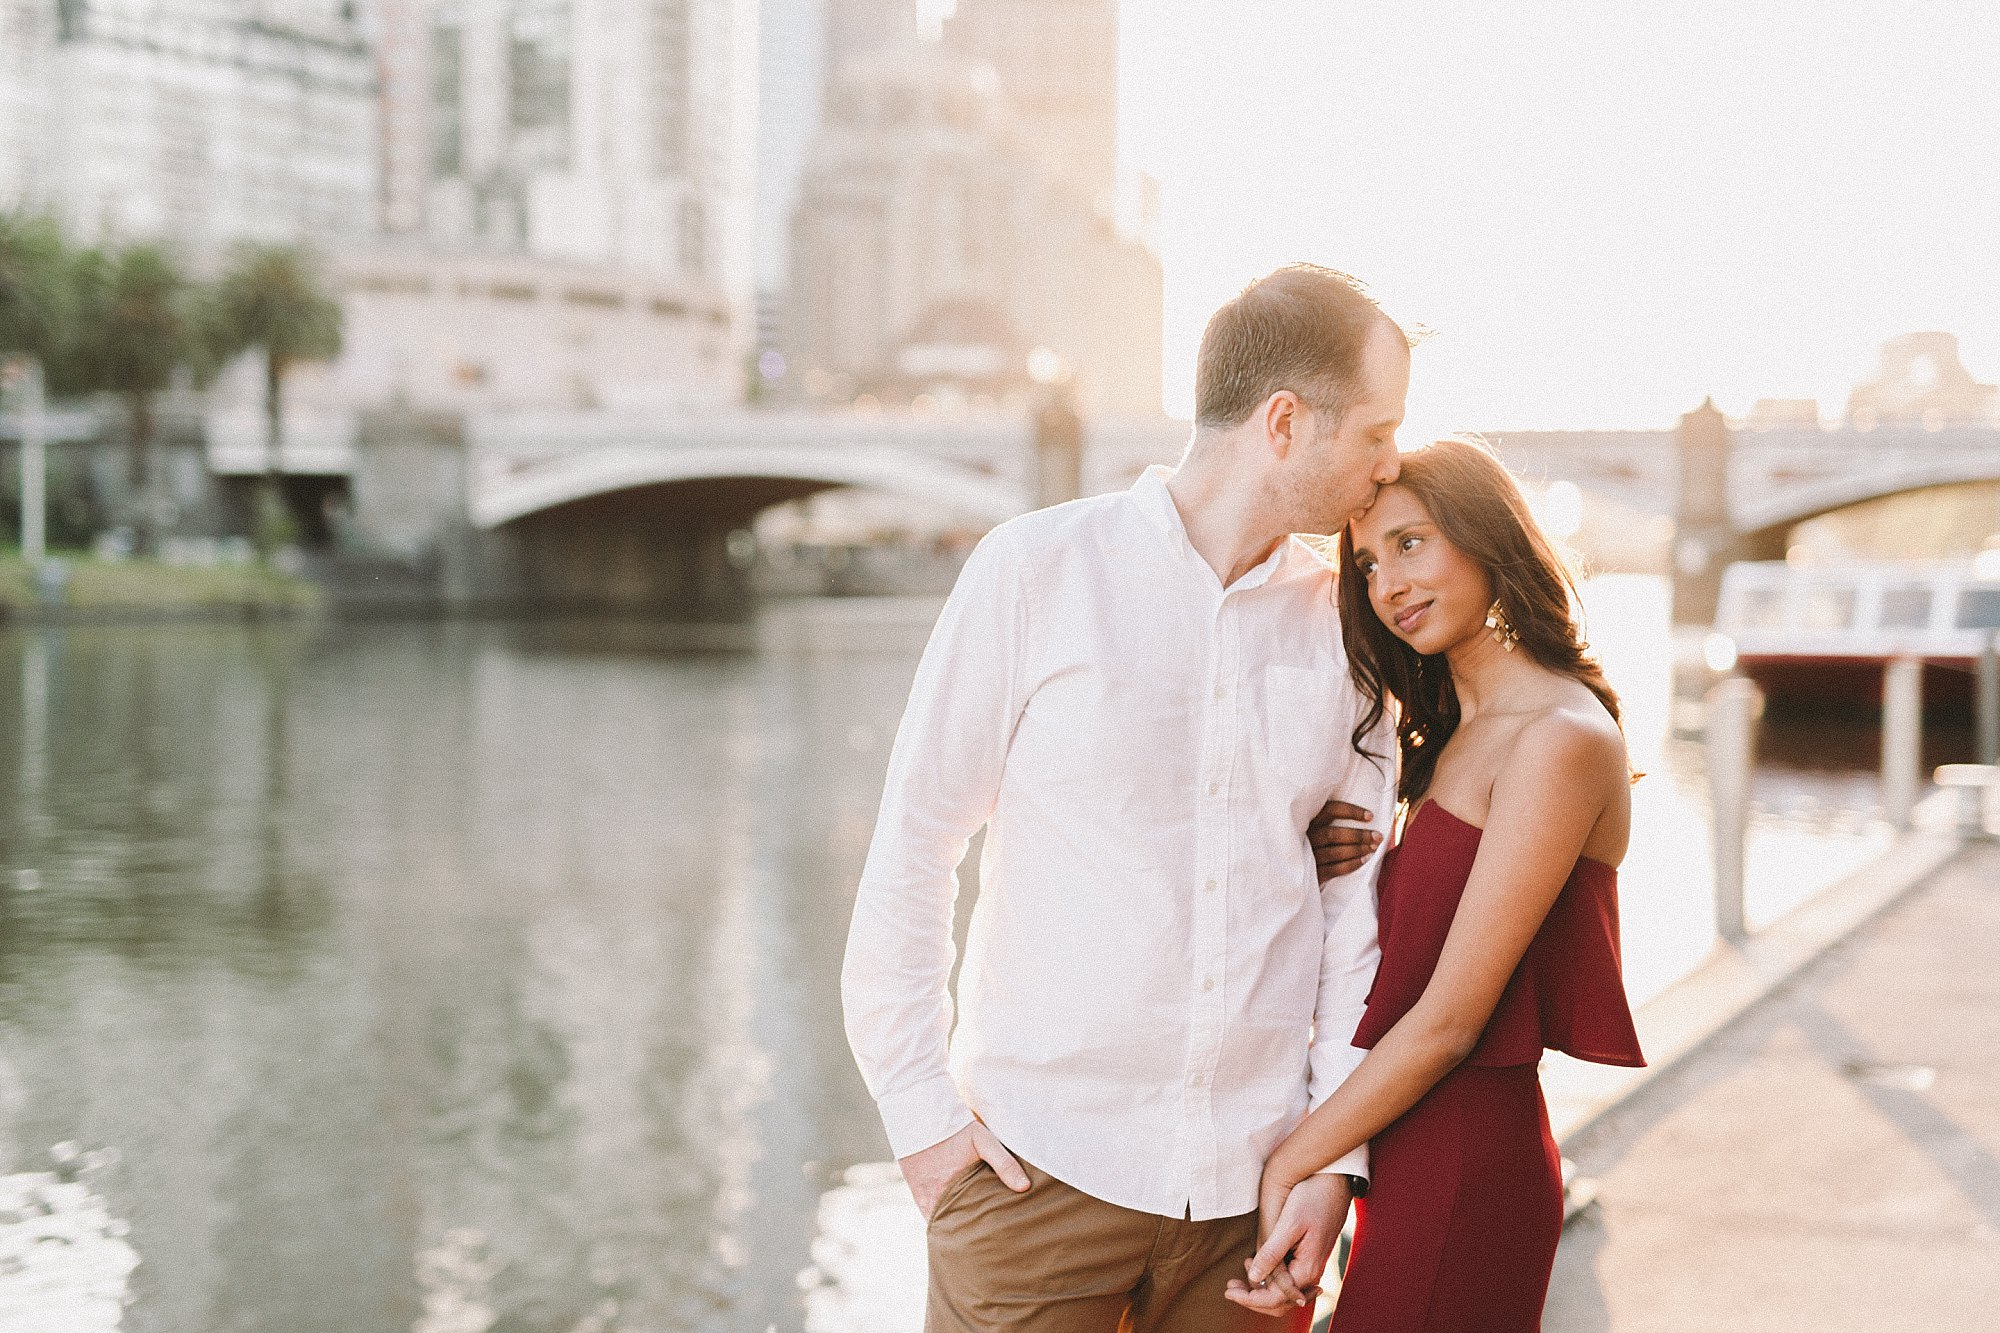 Melbourne Natural and Fun Engagement Wedding Photographer 196.JPG